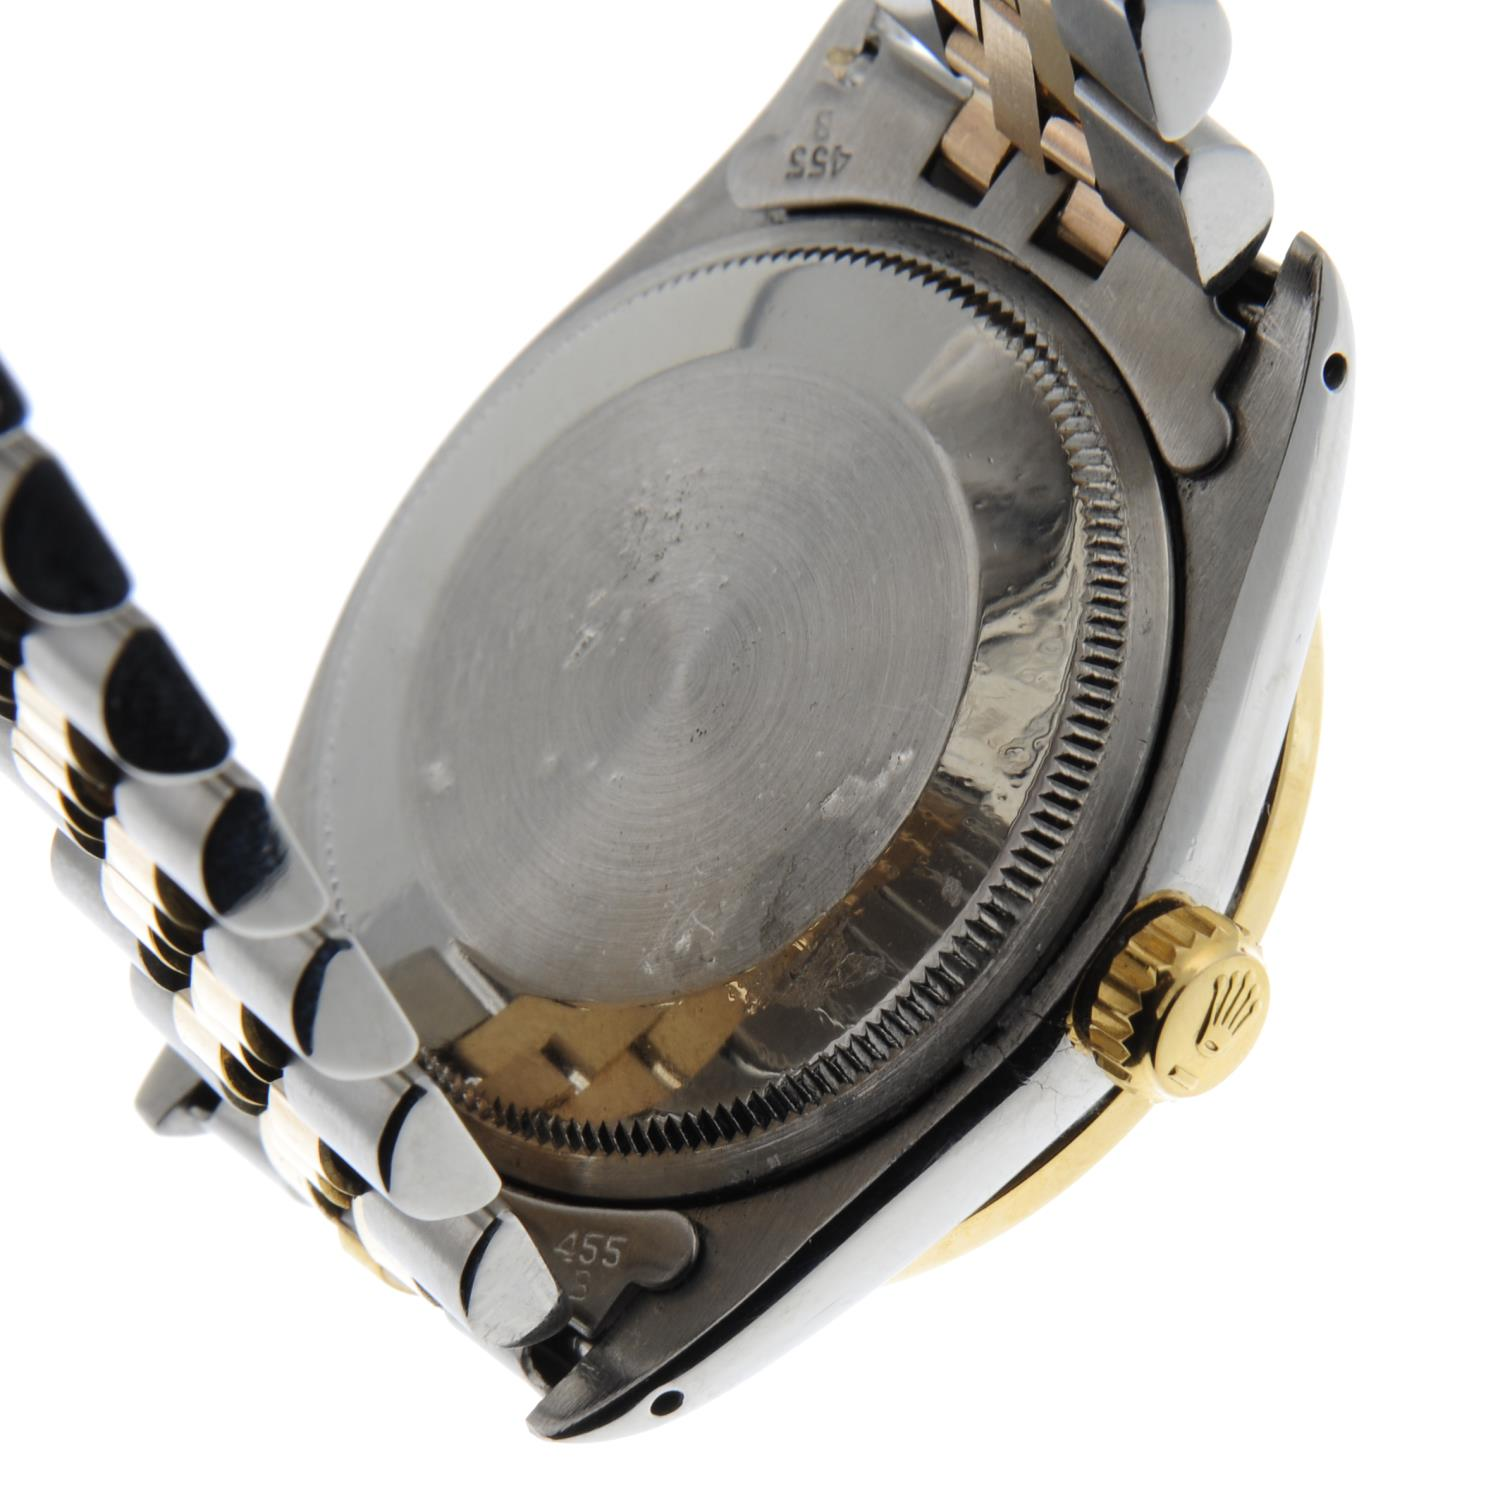 ROLEX - an Oyster Perpetual Date bracelet watch. - Image 2 of 5